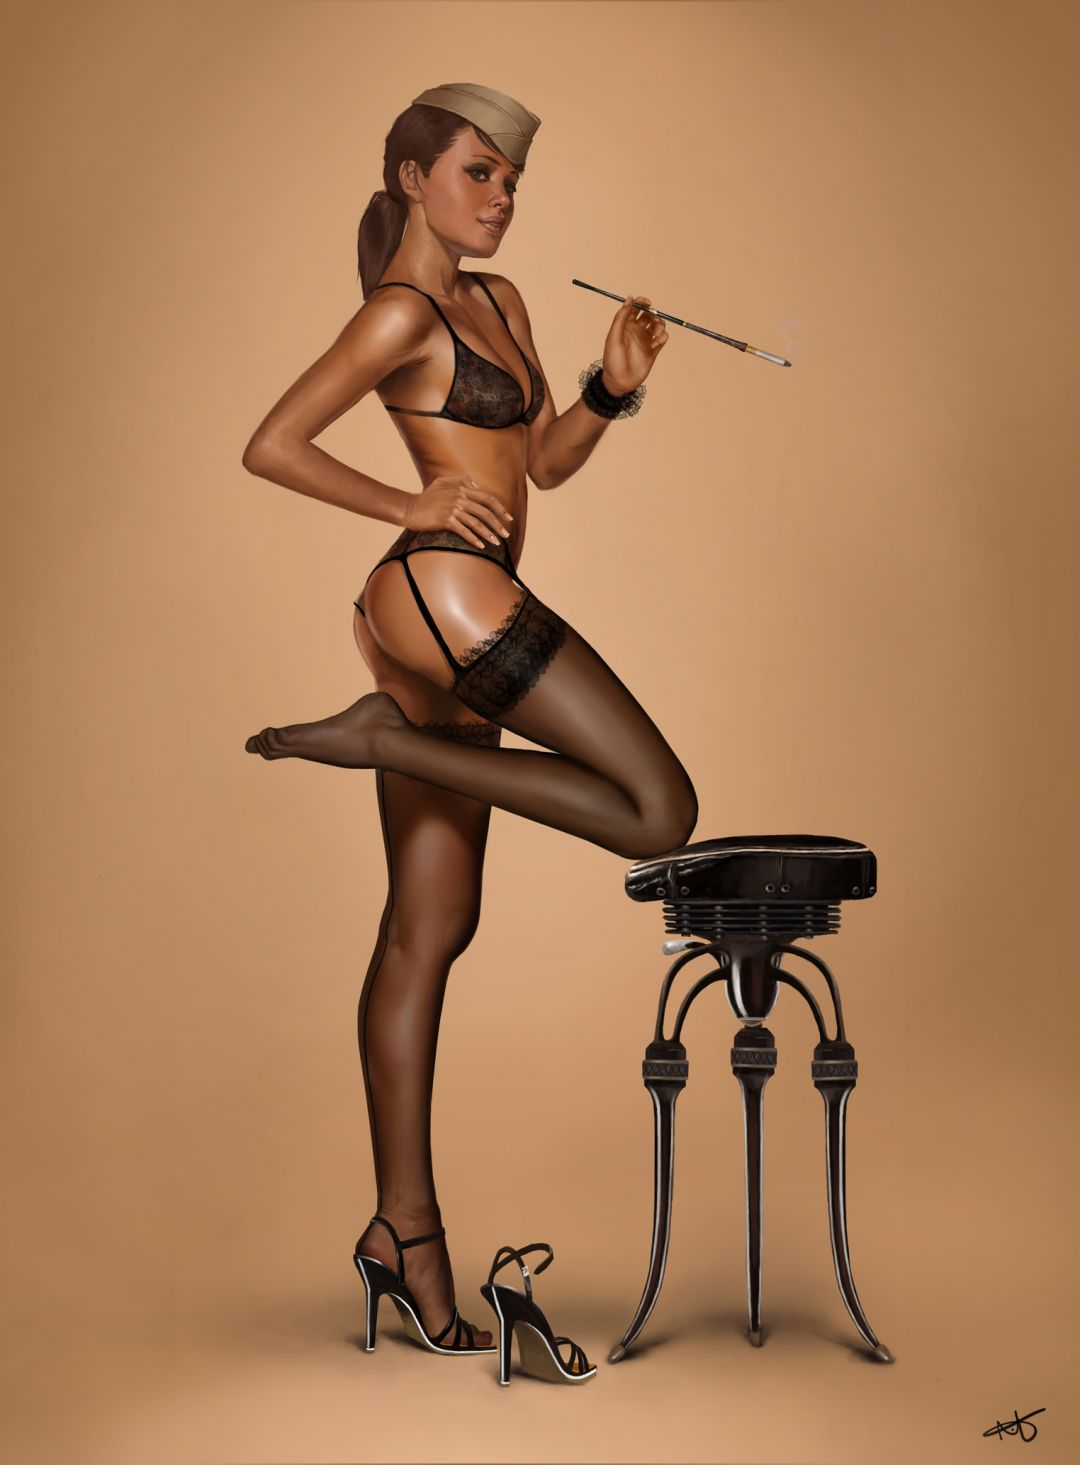 105 Military Pin Up Android Iphone Desktop Hd Backgrounds